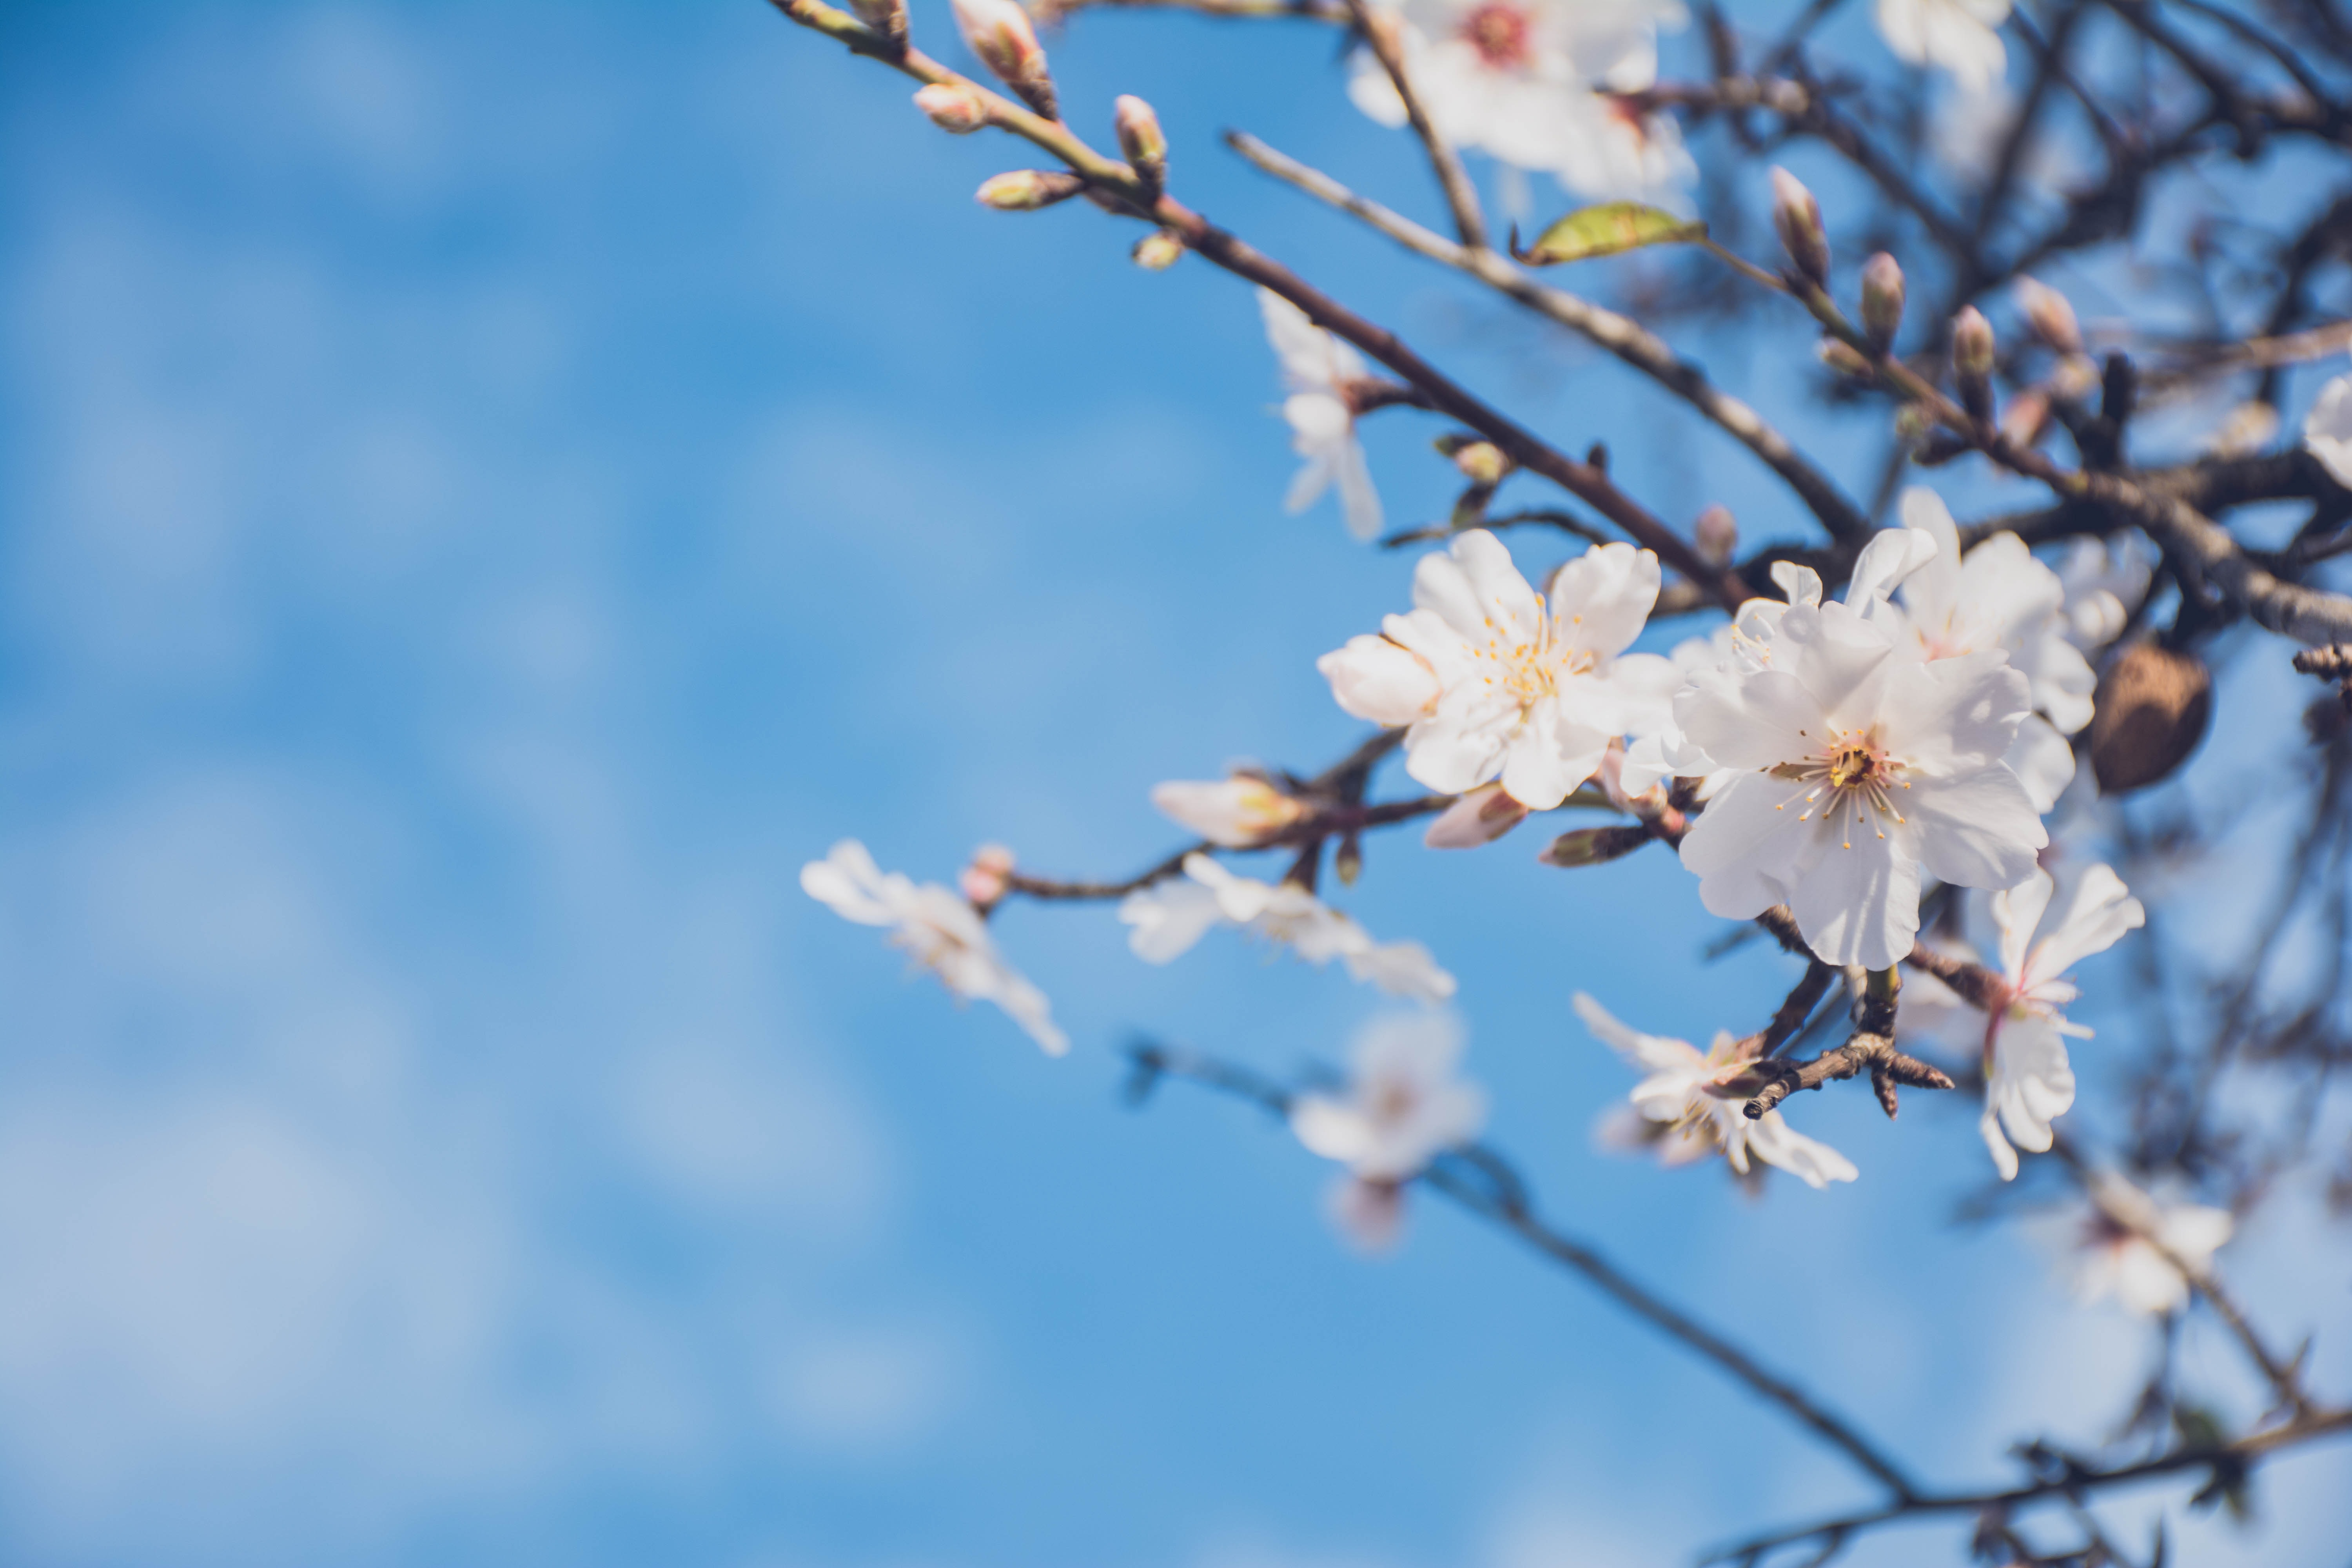 Almond tree and flower in bloom against clear blue sky in Spring, Faro District